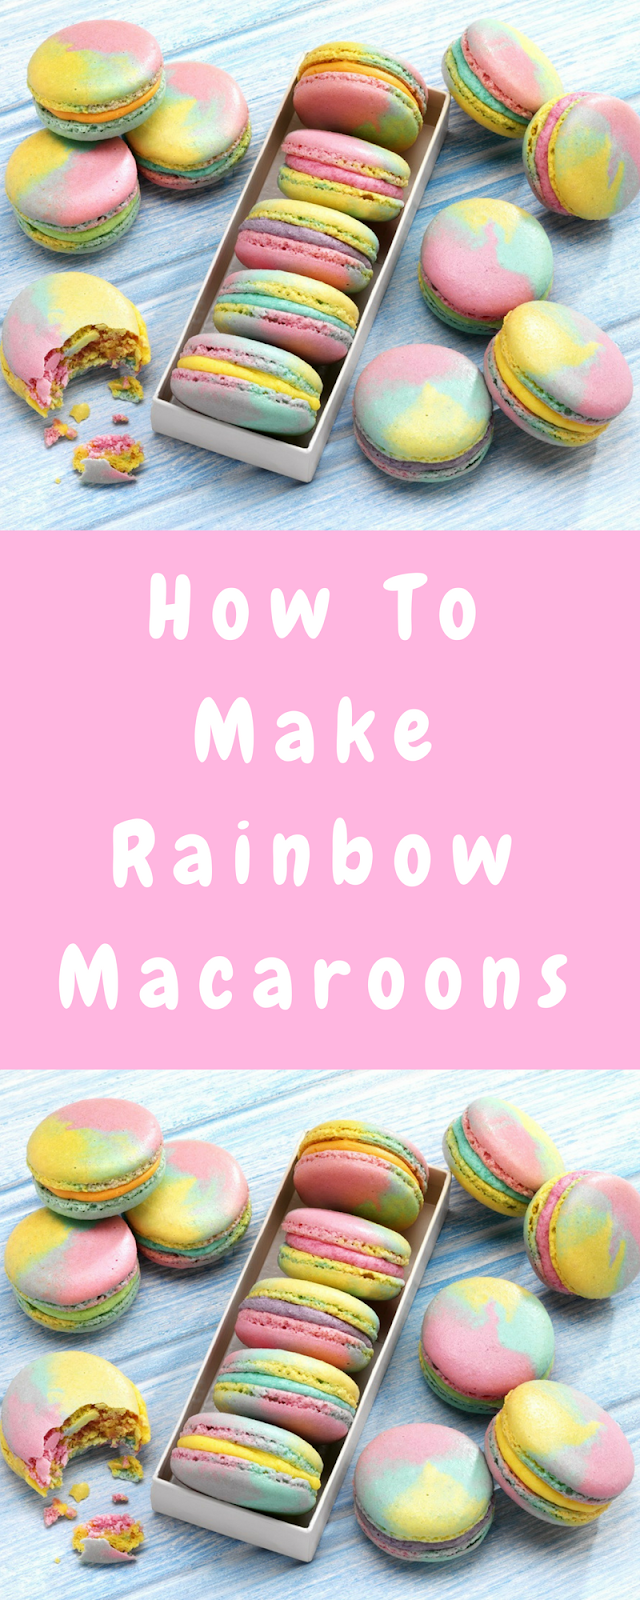 How To Make Rainbow Macaroons